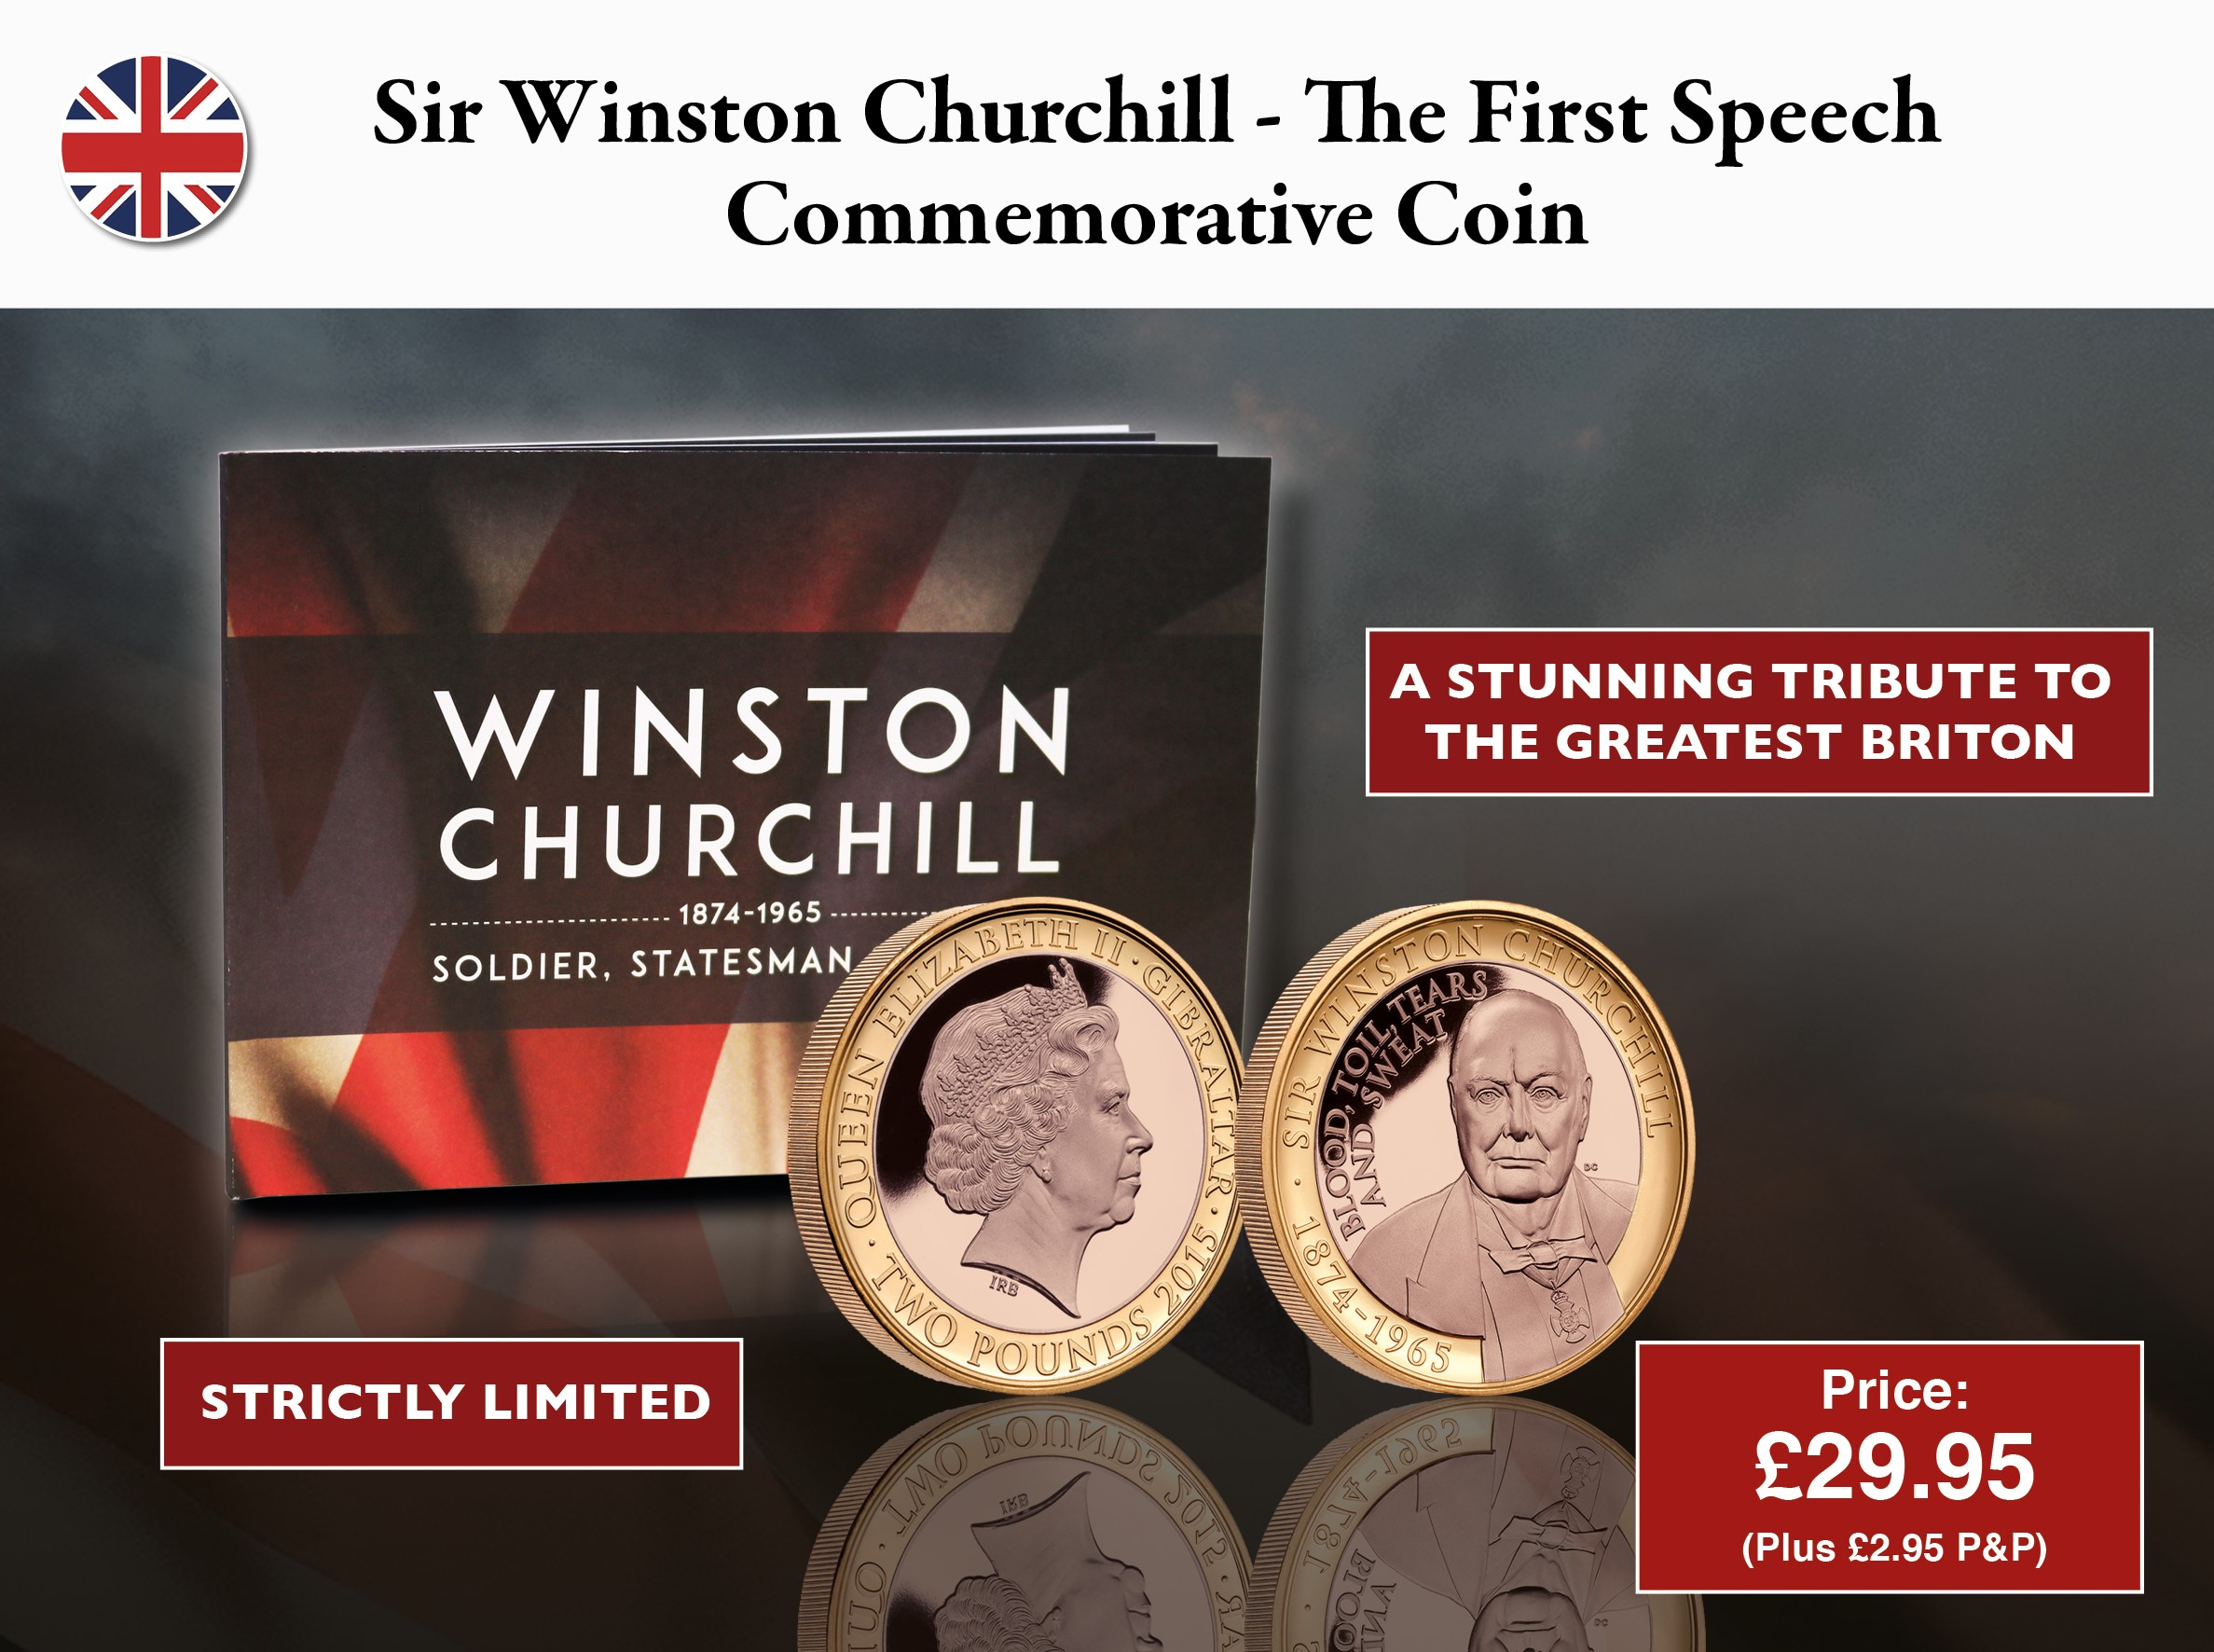 Sir Winston Churchill - The First Speech Commemorative Coin